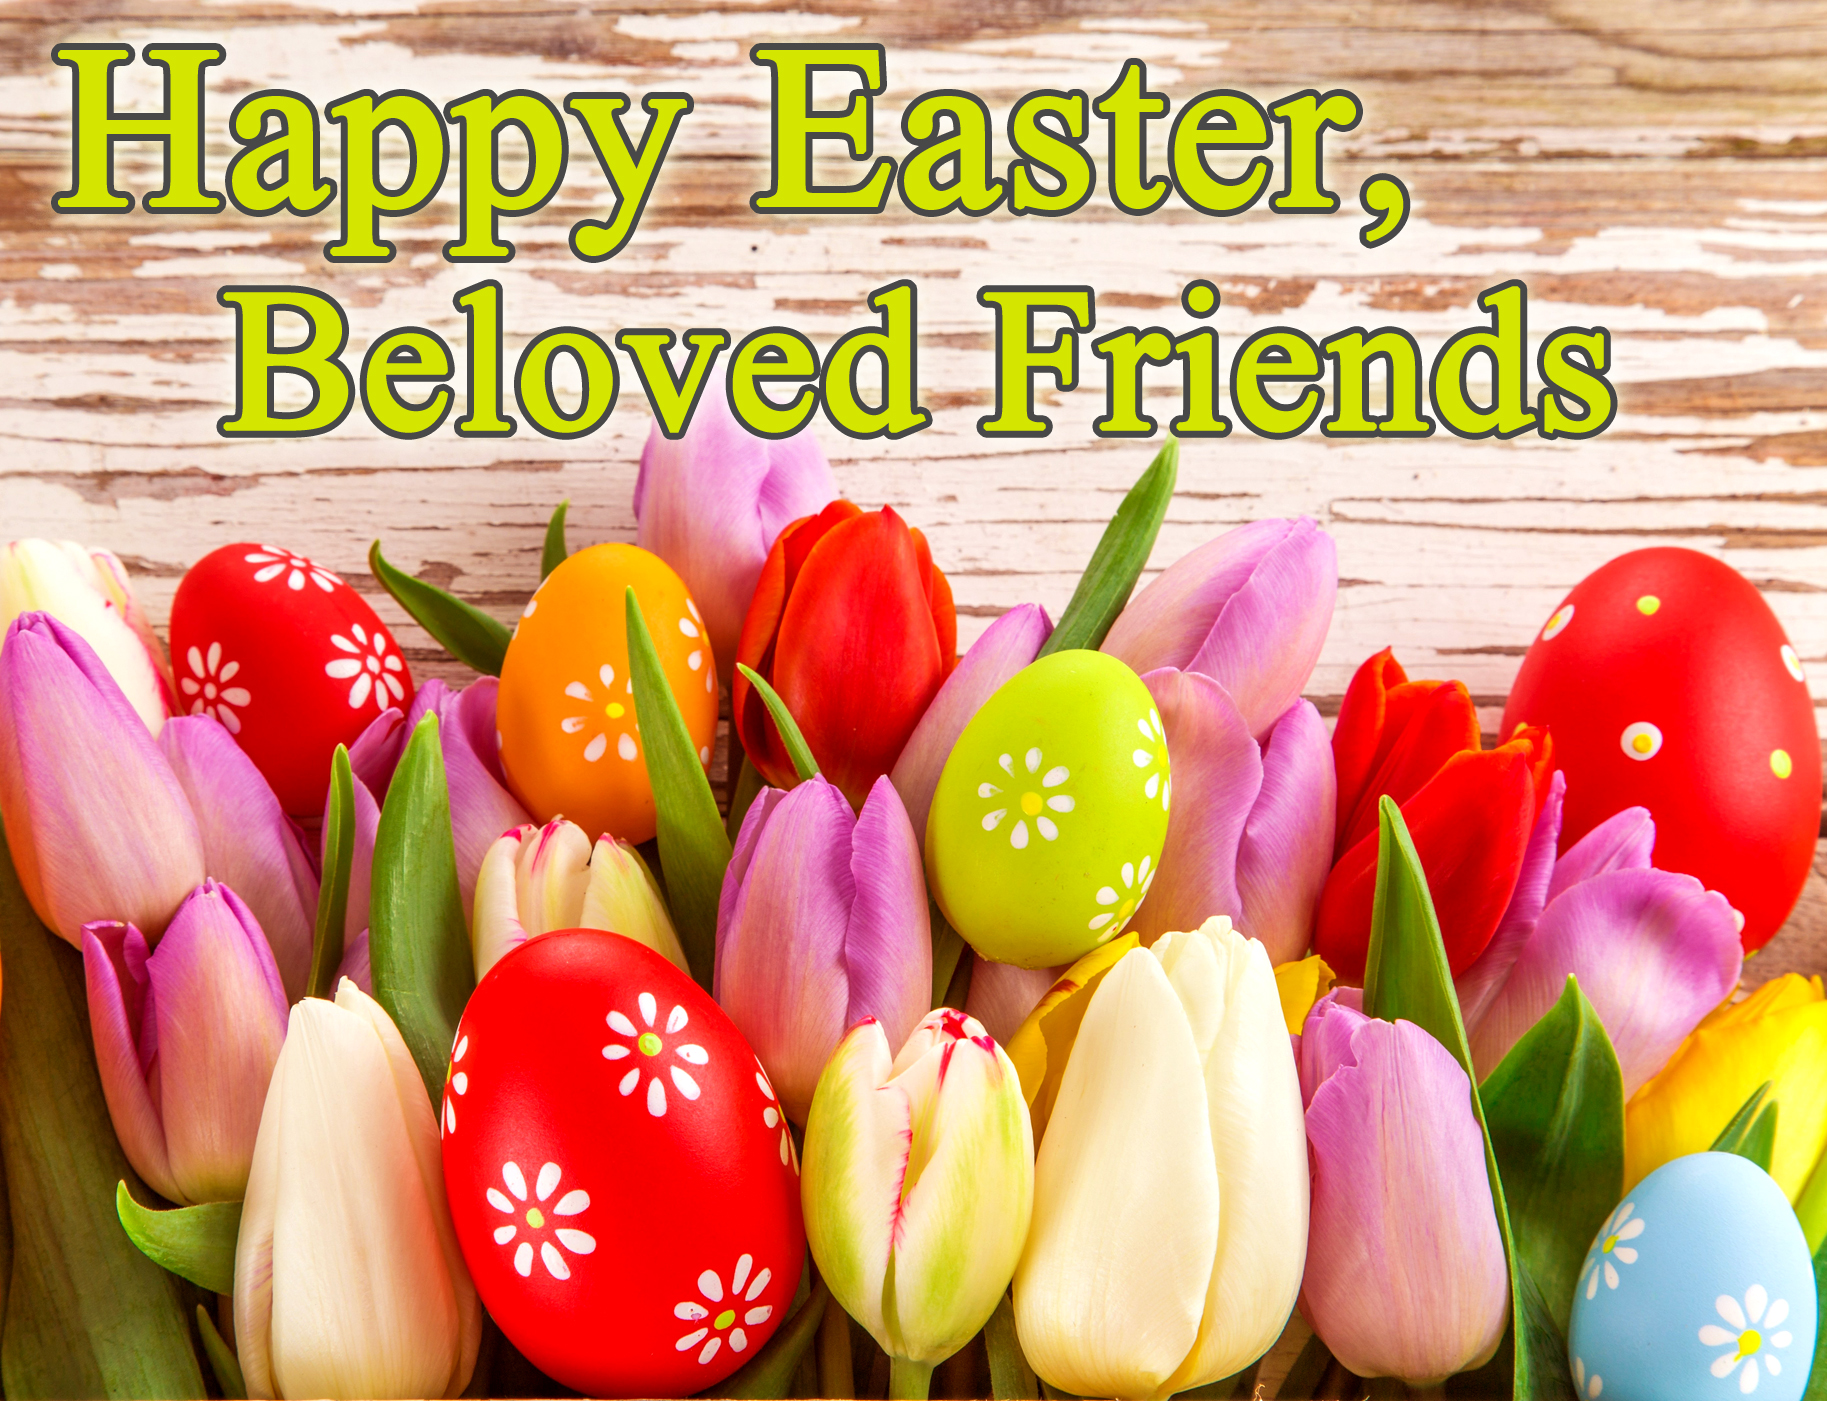 Easter holiday greeting cards wallpapers e cards for friends and happy easter greeting card for friends m4hsunfo